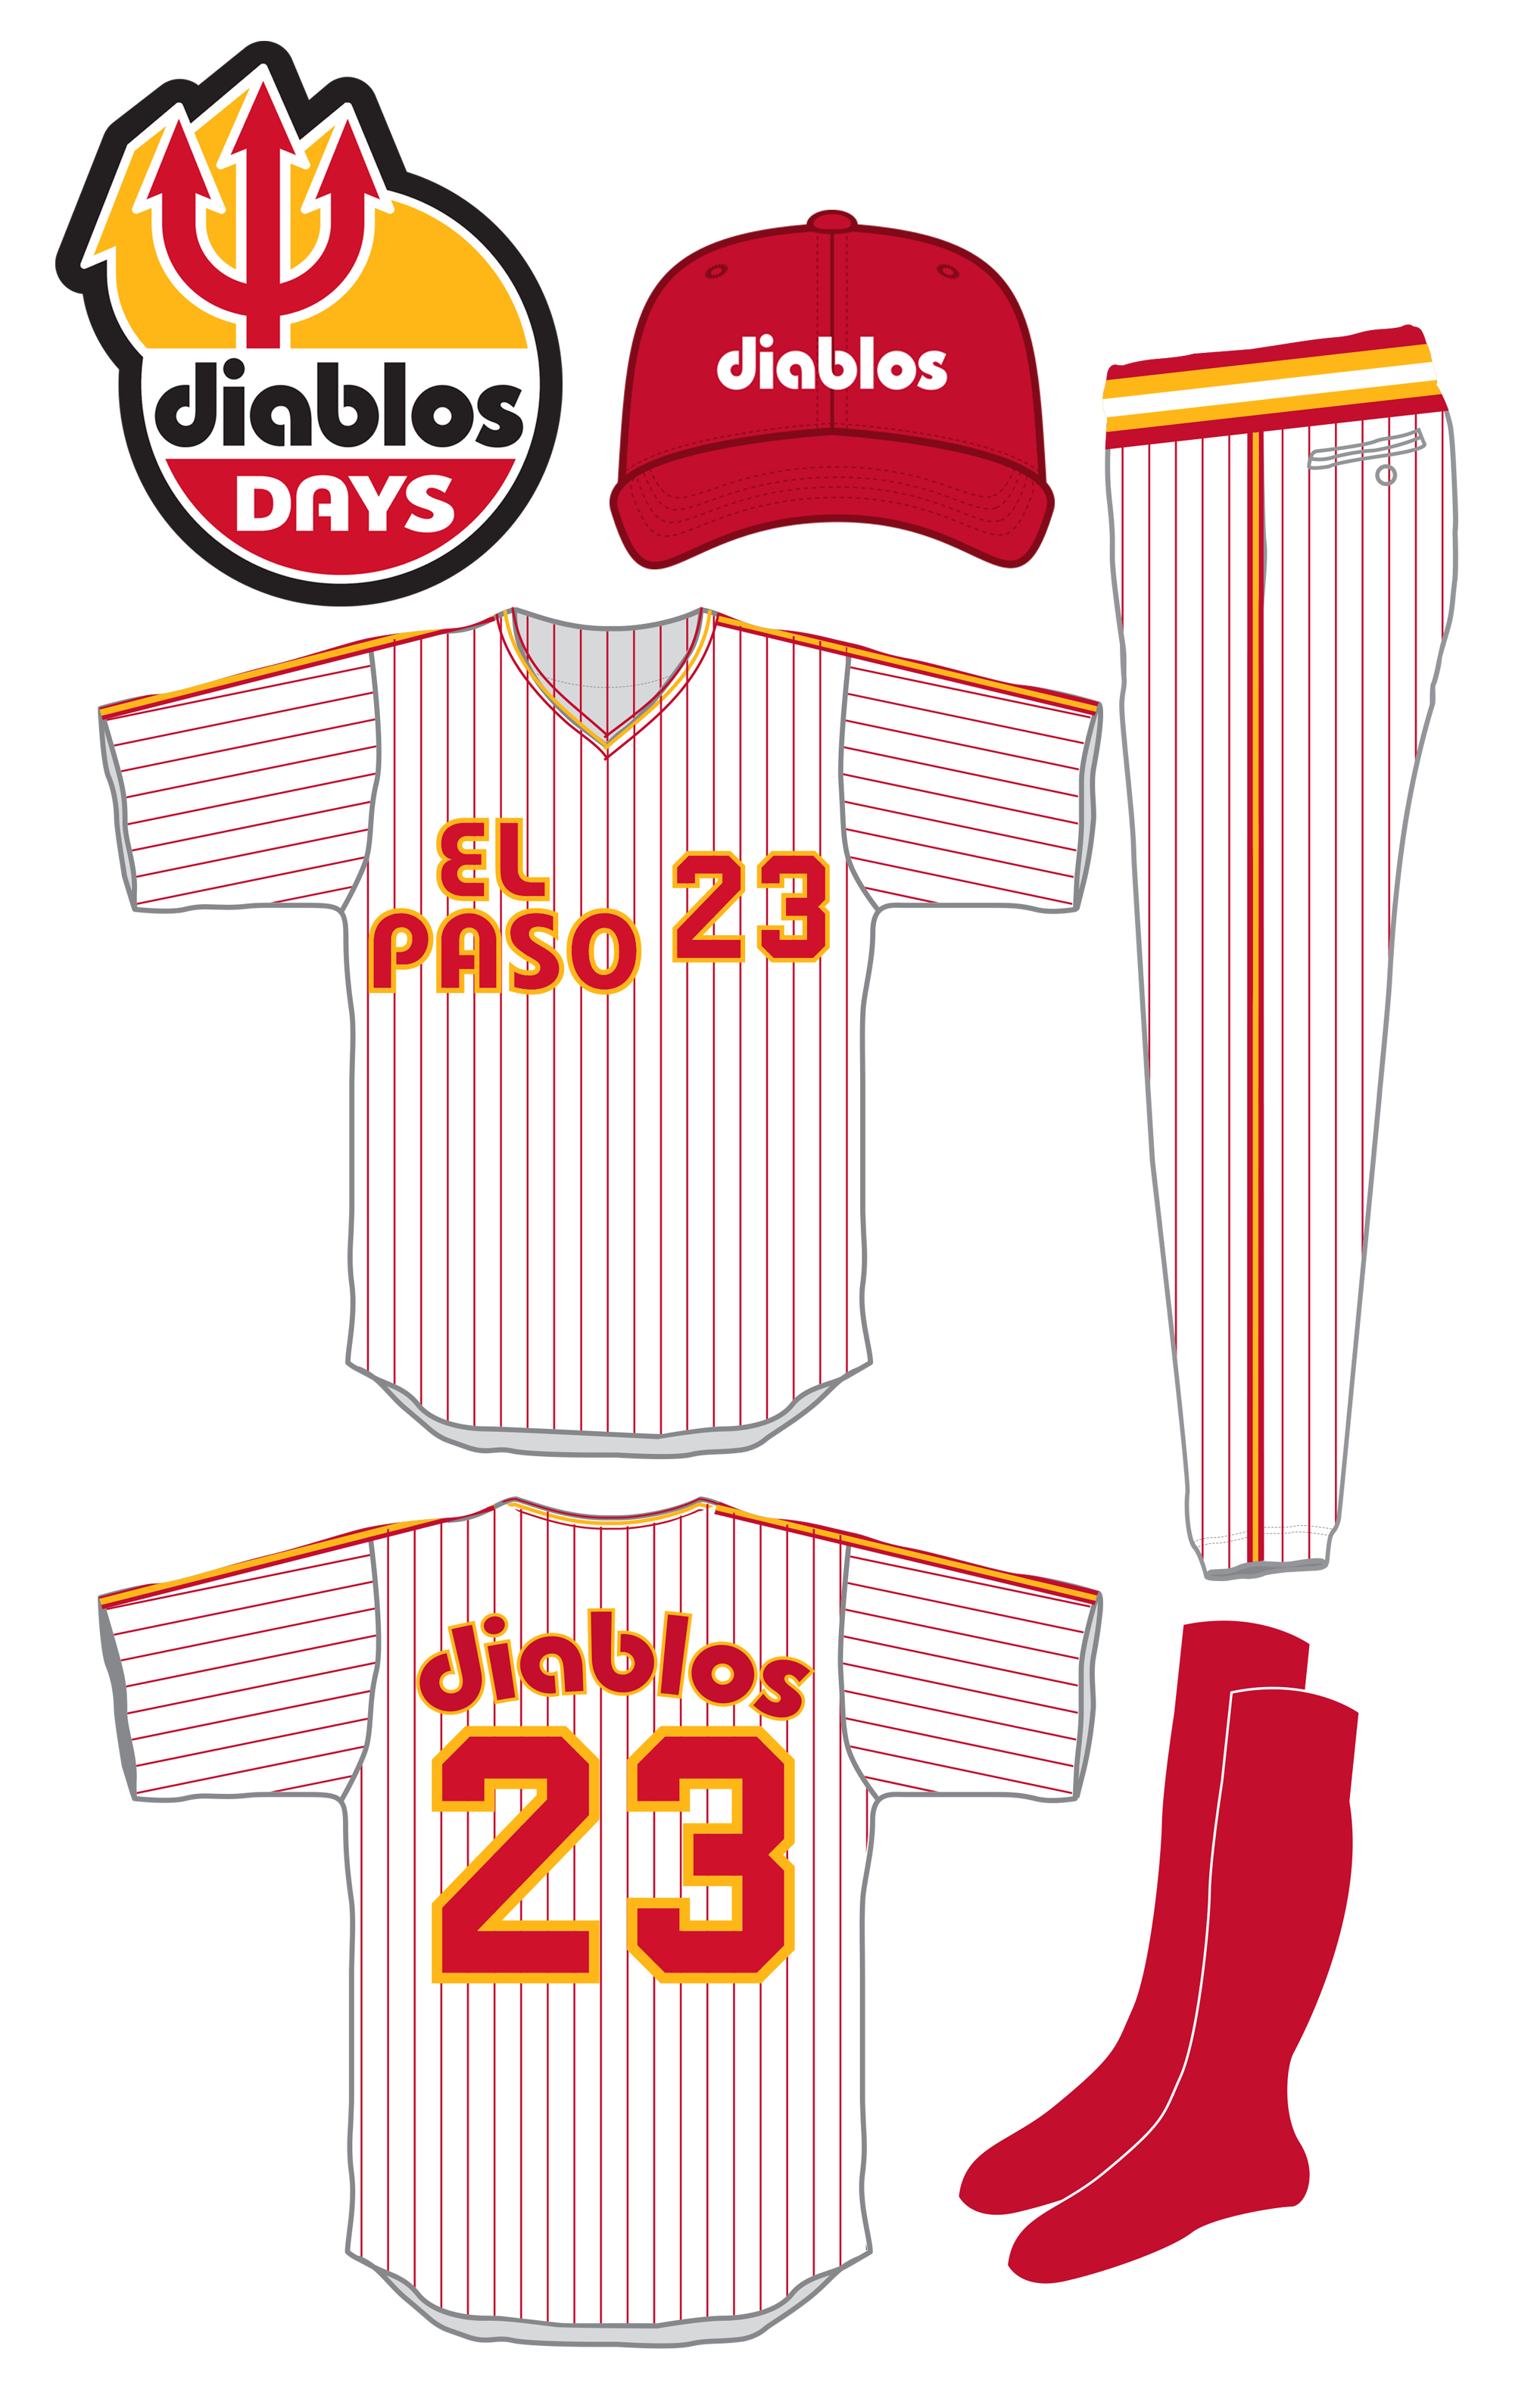 we're bringing it home chihuahuas introduce diablos days! | el